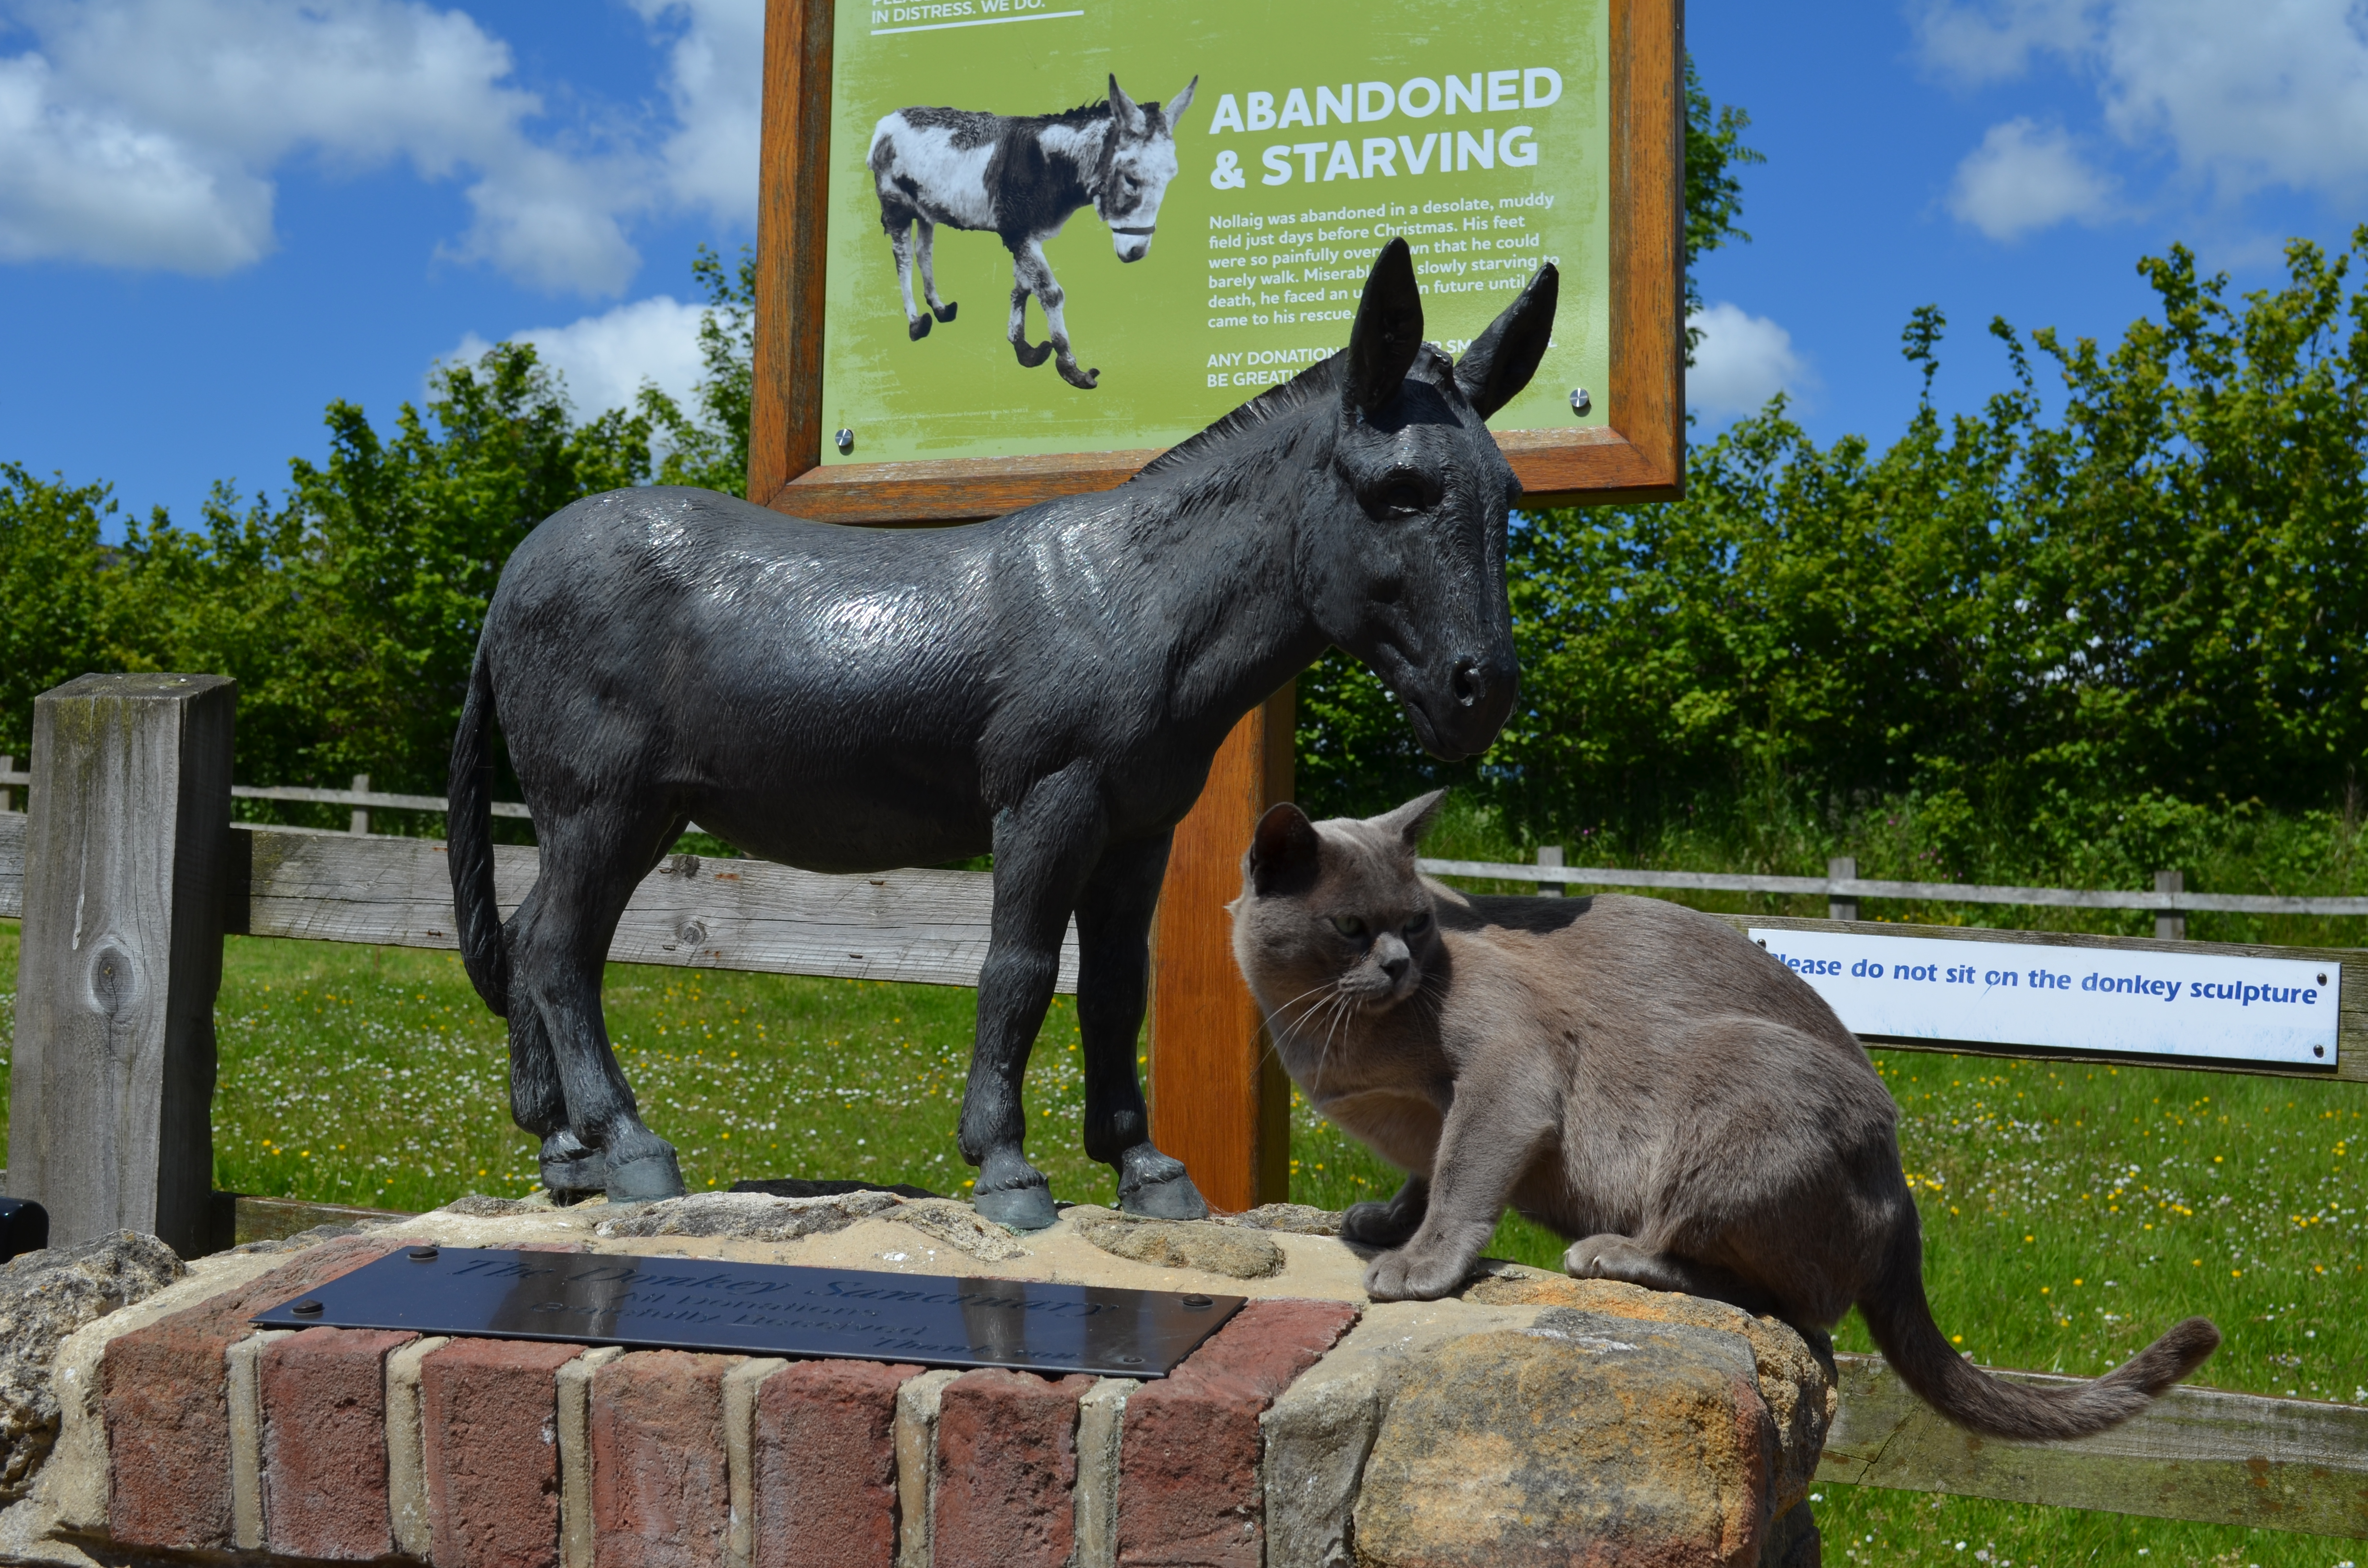 Beau and the Donkey Sanctuary sign